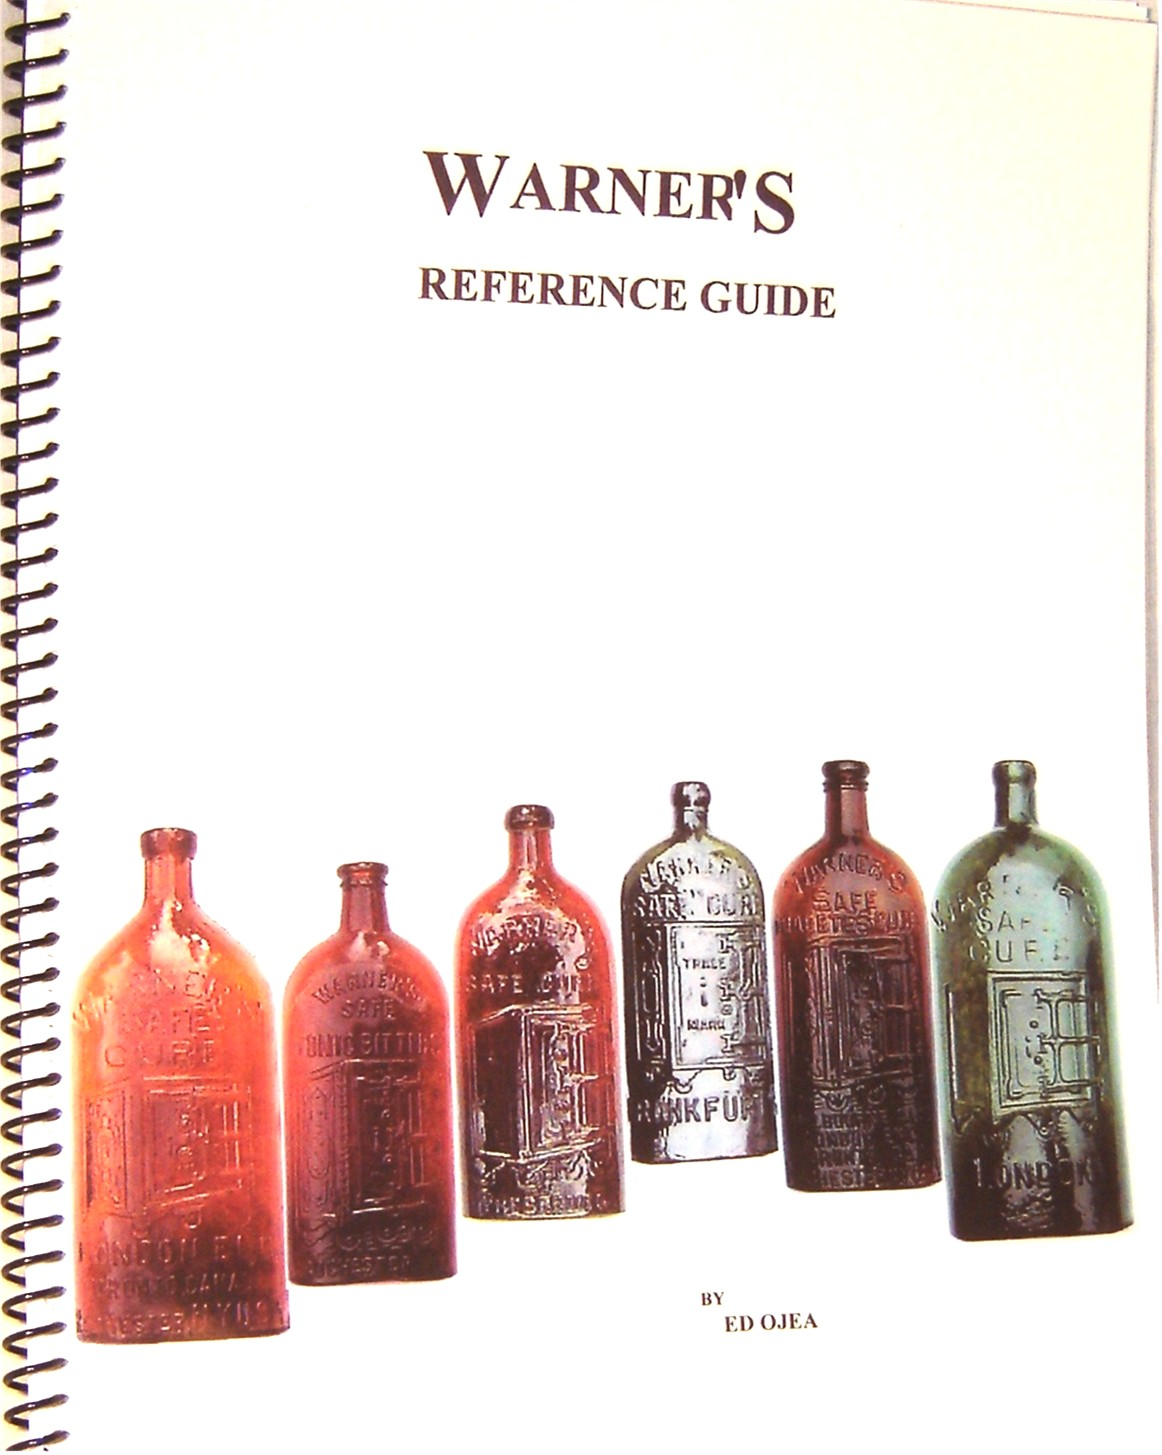 Warner's reference guide